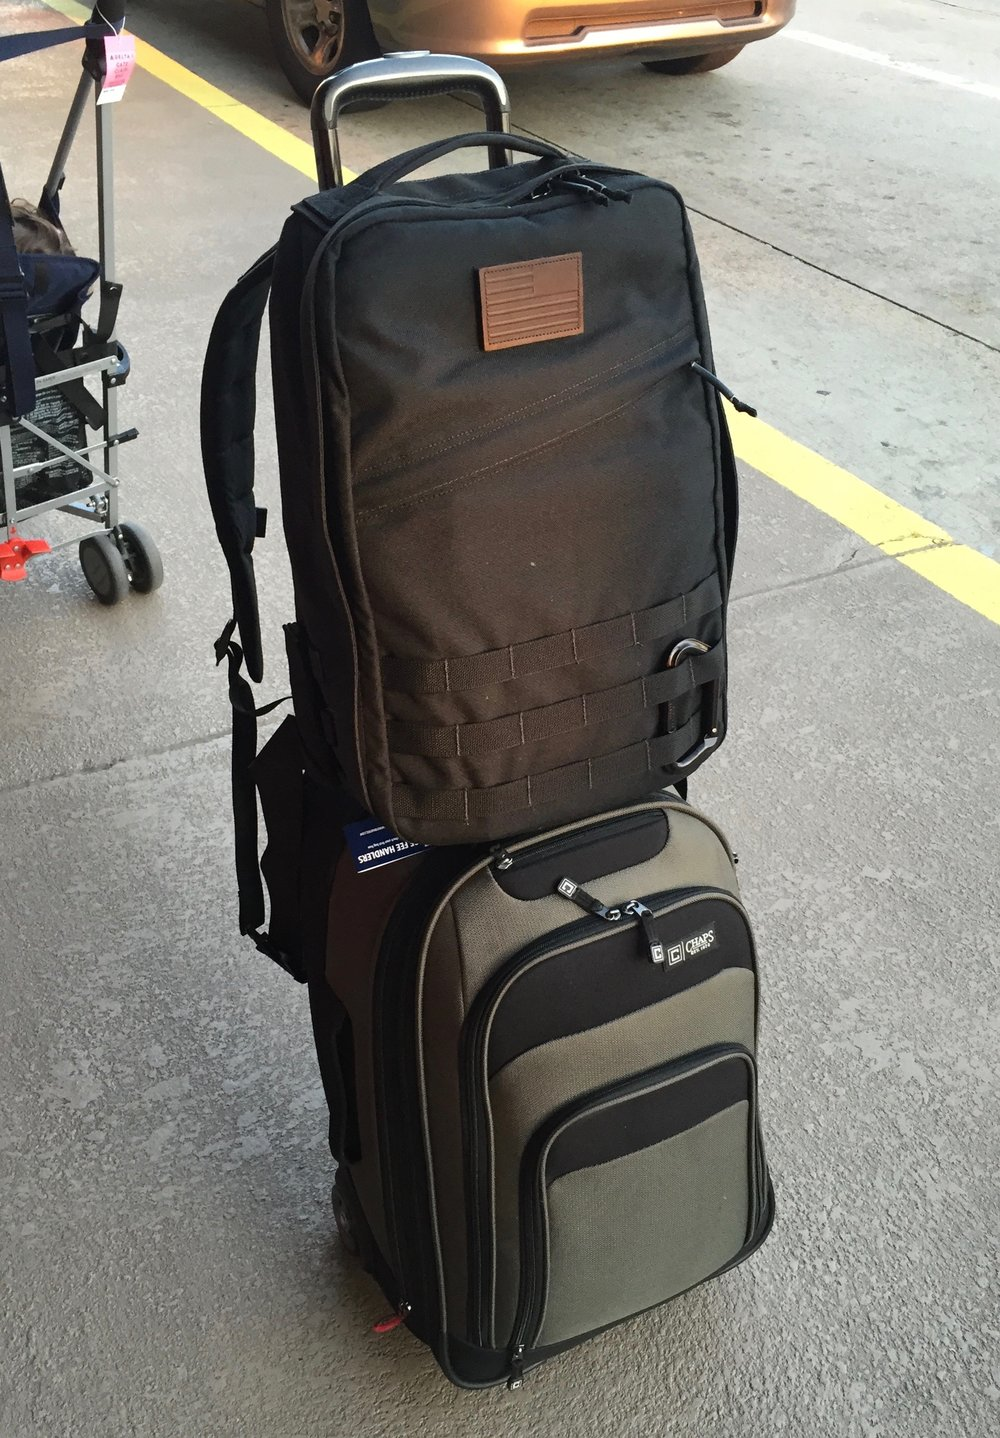 My GR1 riding on an old Chaps luggage I designed in 2011.